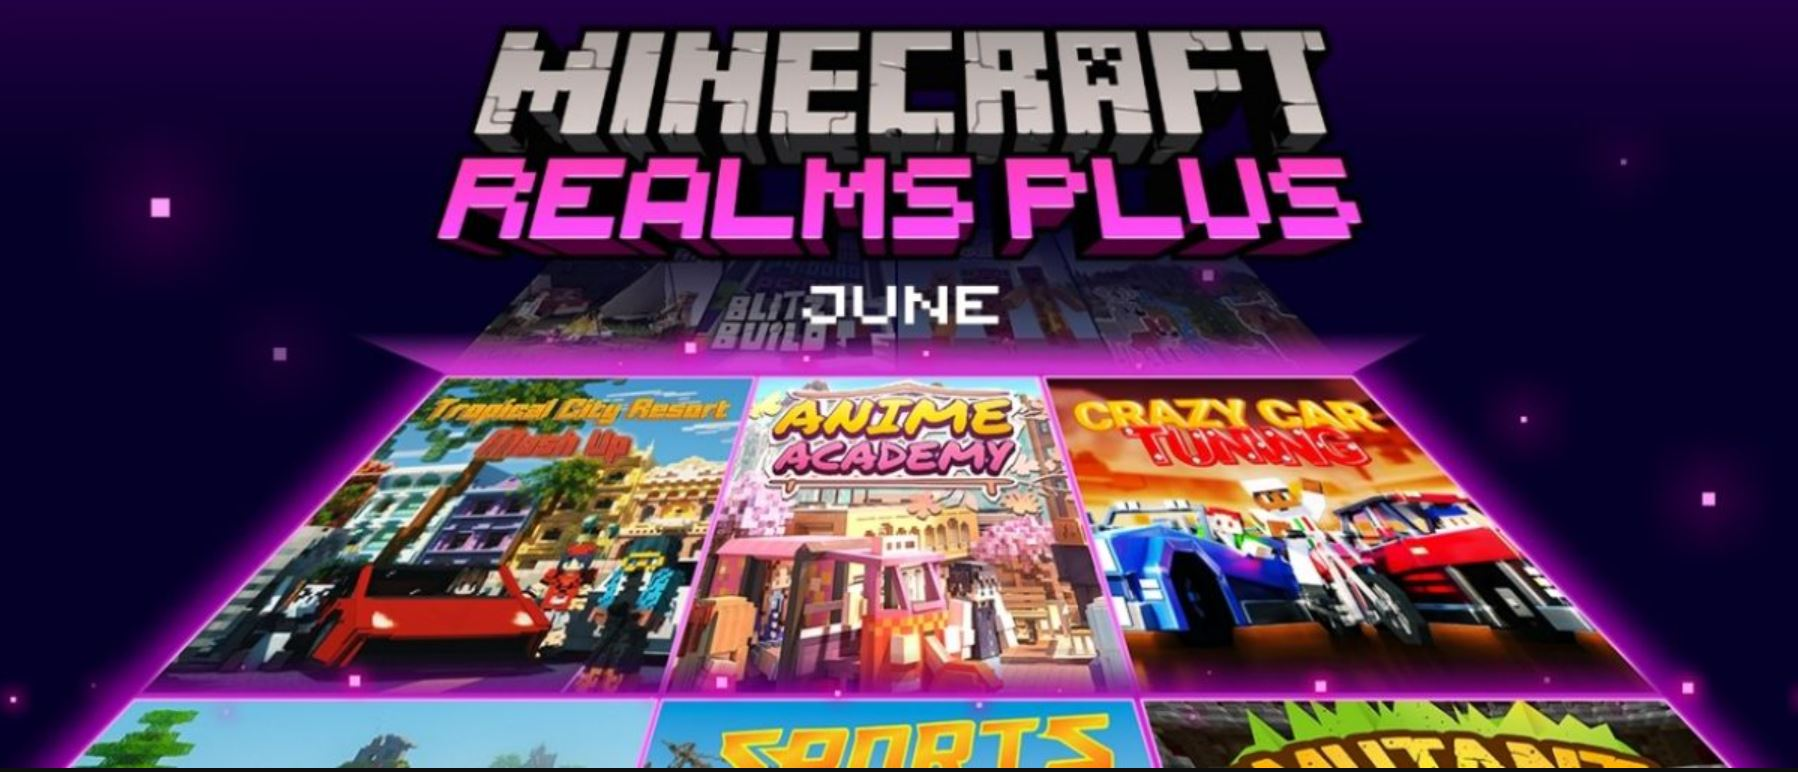 Minecraft Realms Plus June Update: Anime Academy Designed For Anime Minecraft Players!